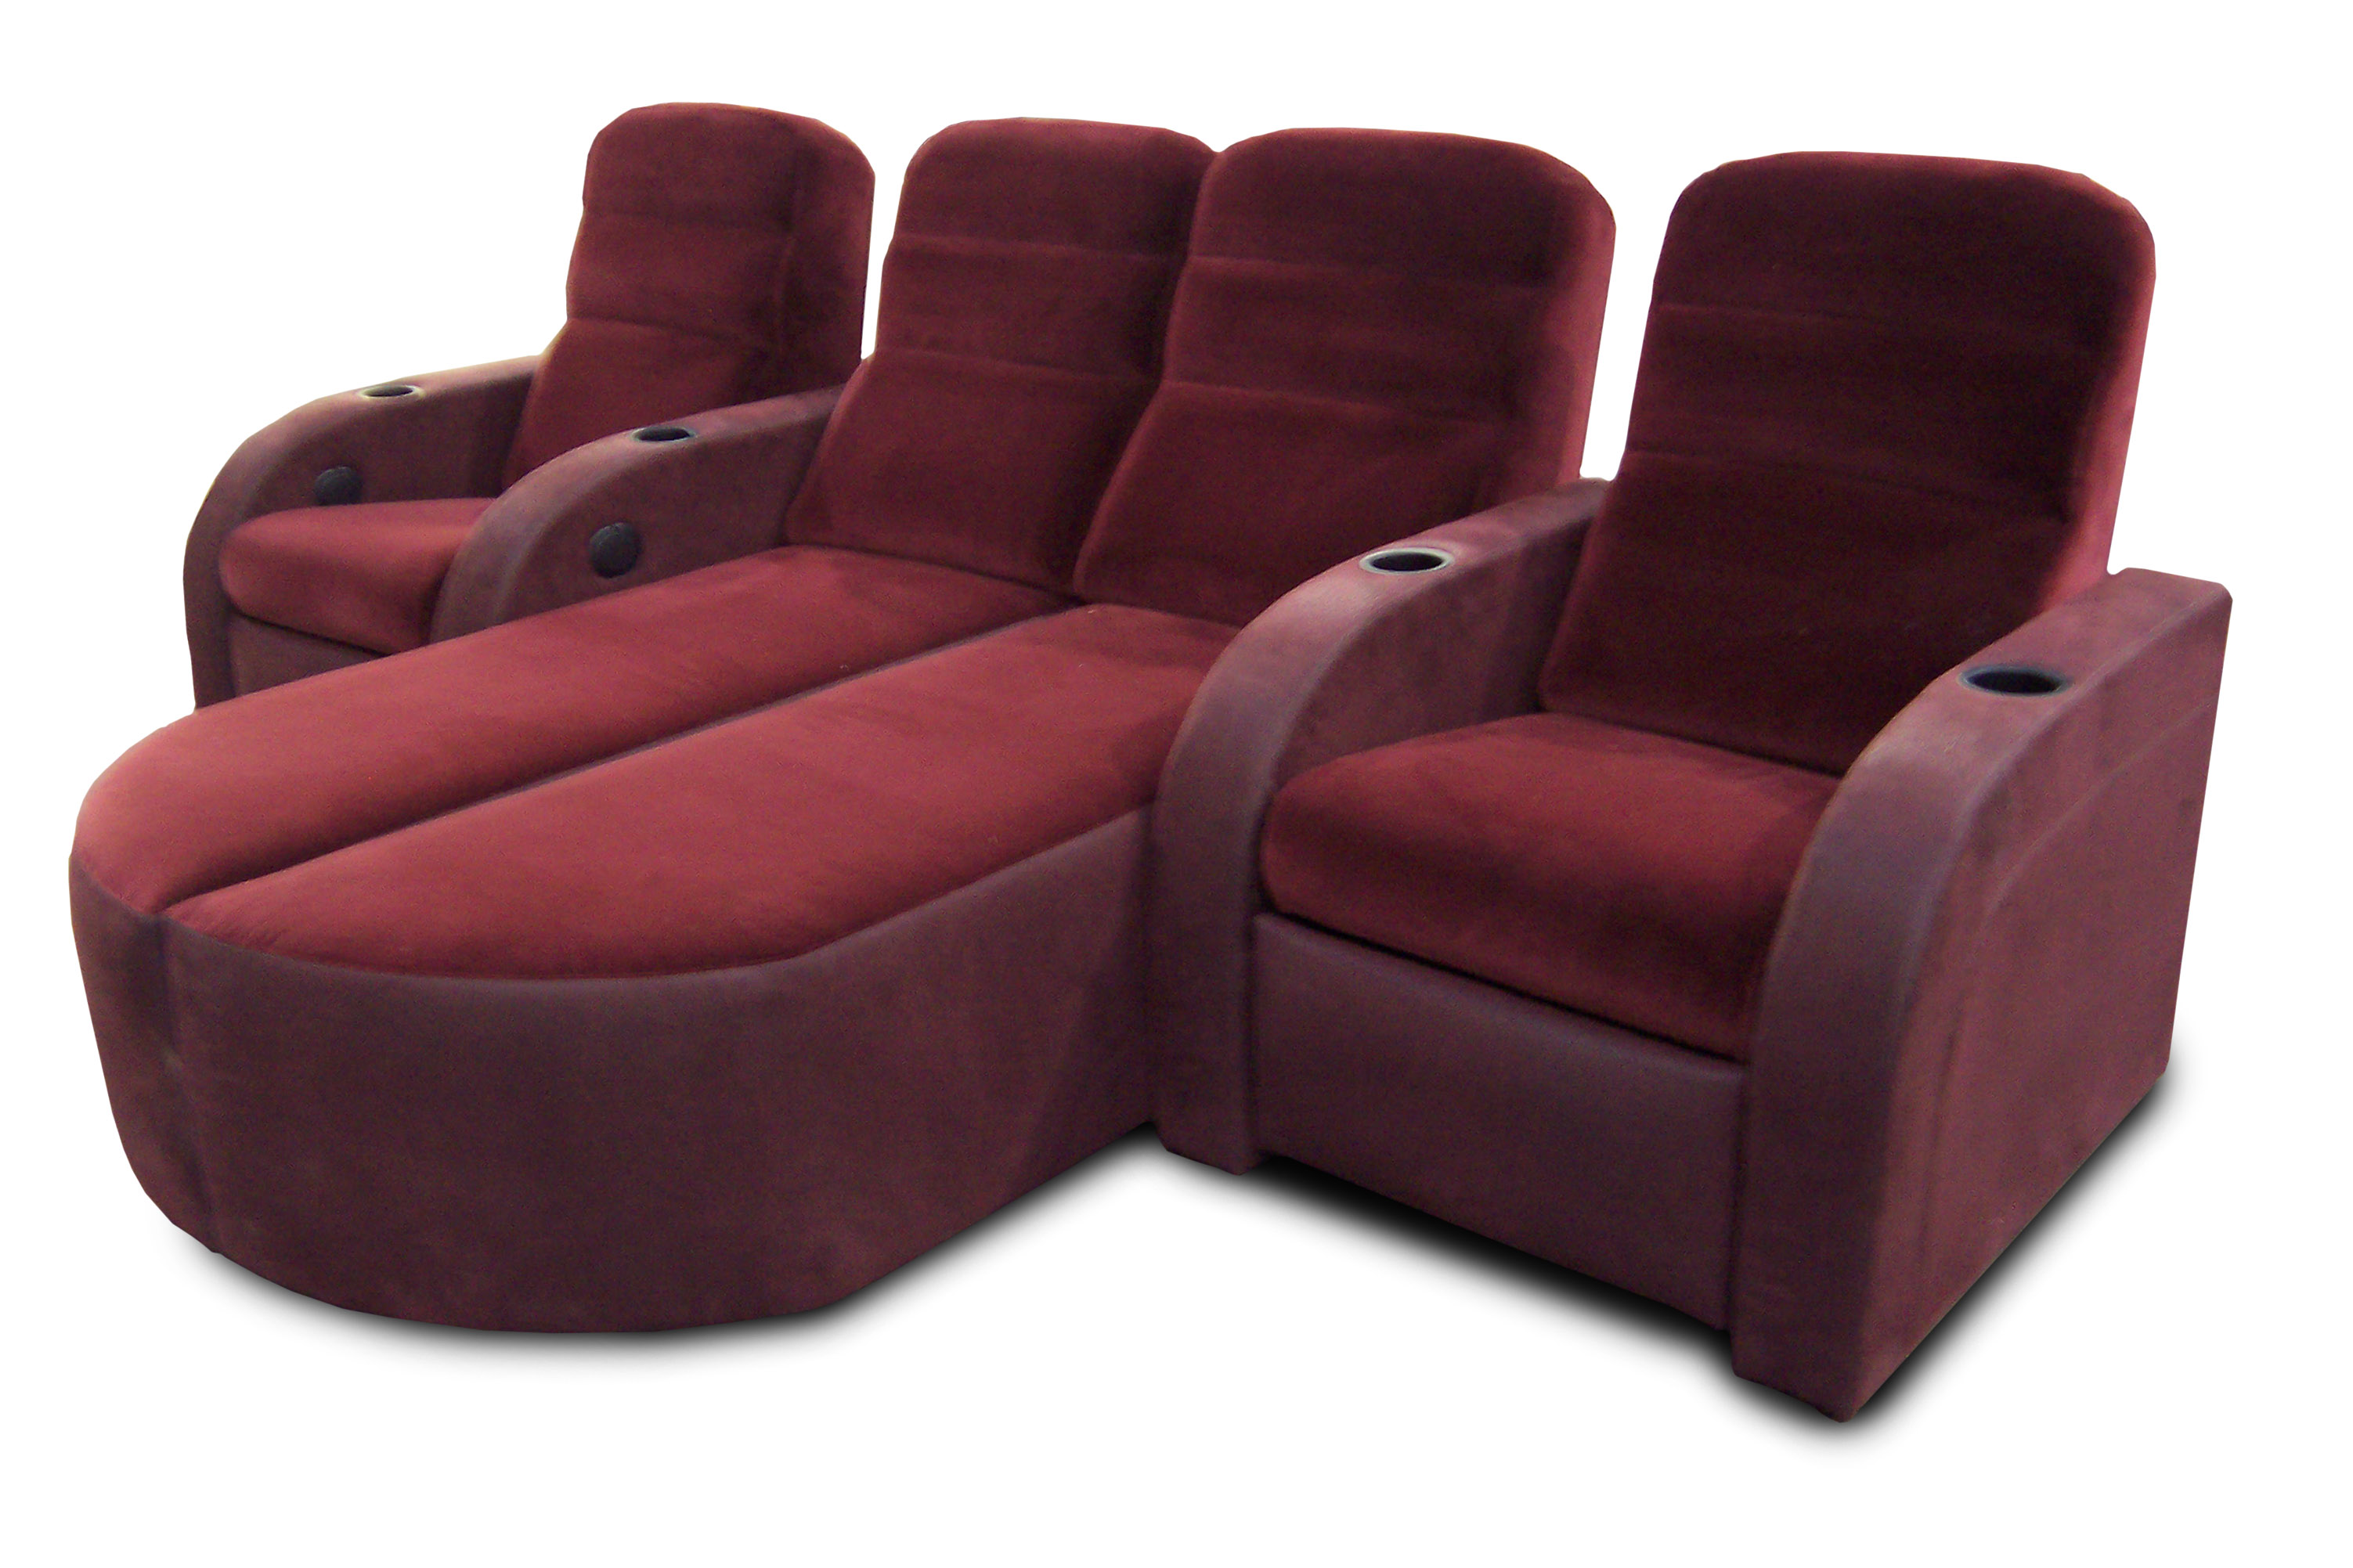 3 Seaters Recliners 2016 : Recliners from ikuzofurniture.com size 3005 x 2003 jpeg 691kB